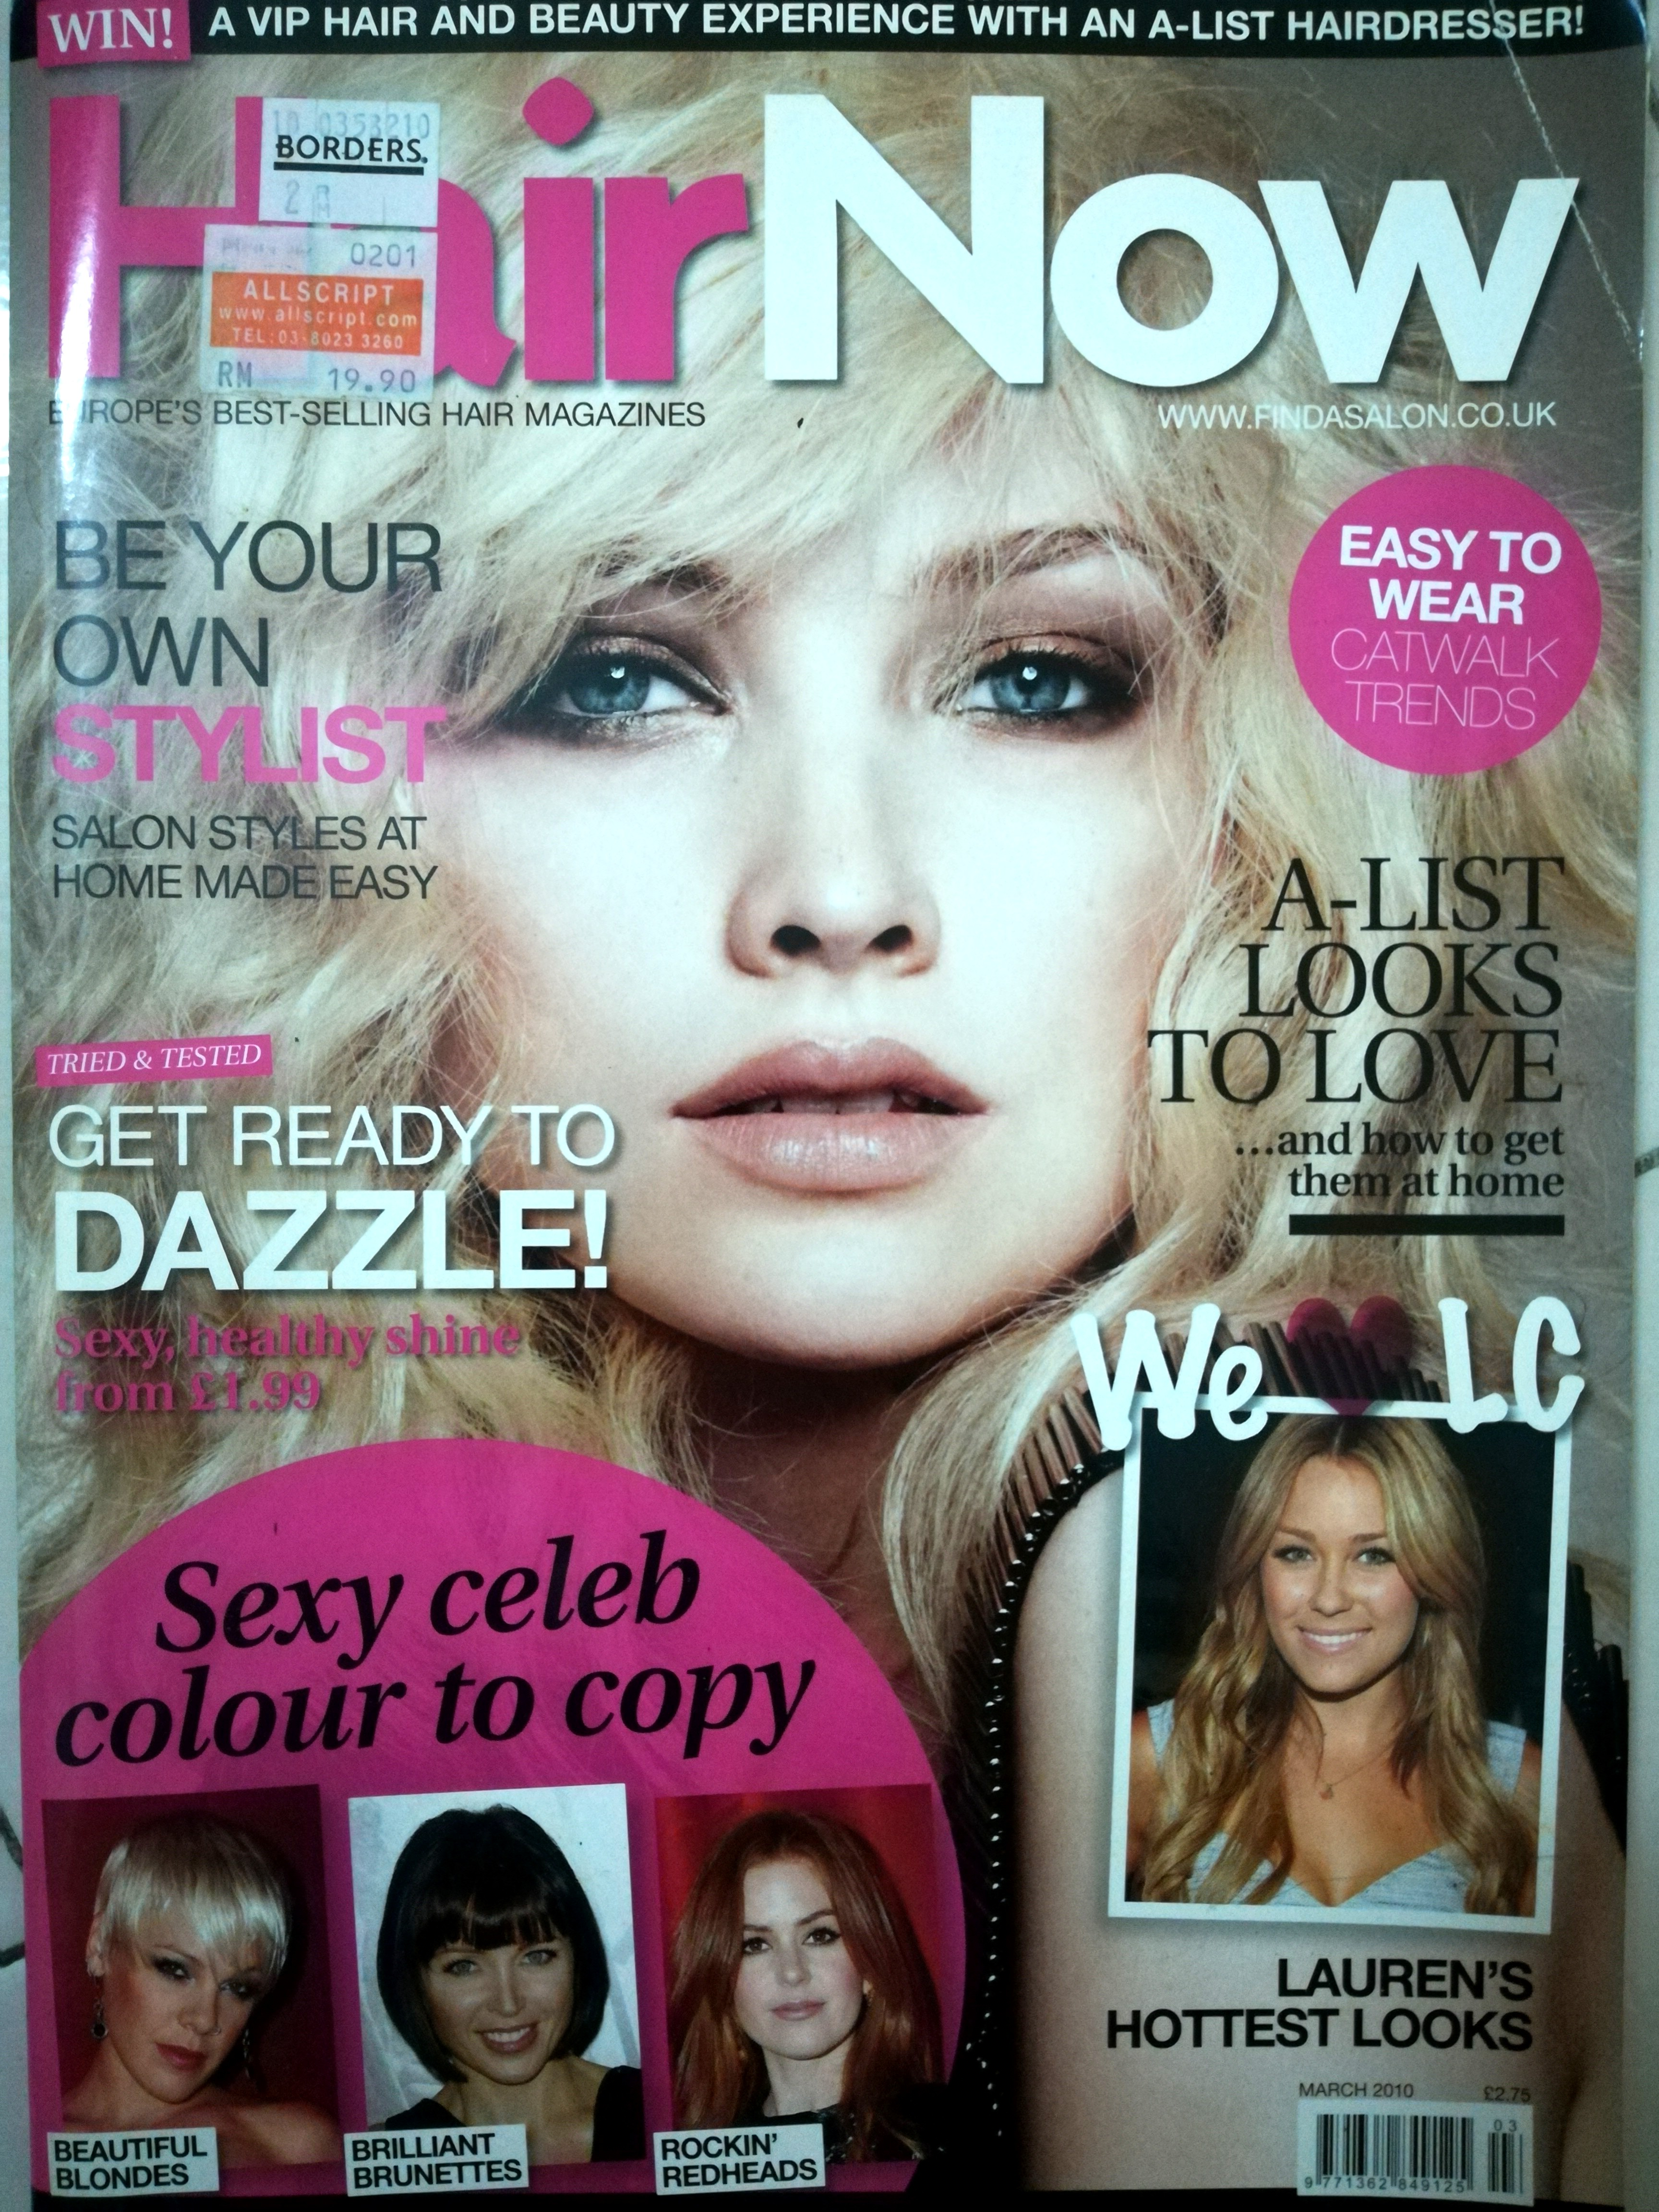 Hairstyles Magazines Bundle Haircut And Hair Coloring Tutorials For Hairstylists And More Textbooks On Carousell